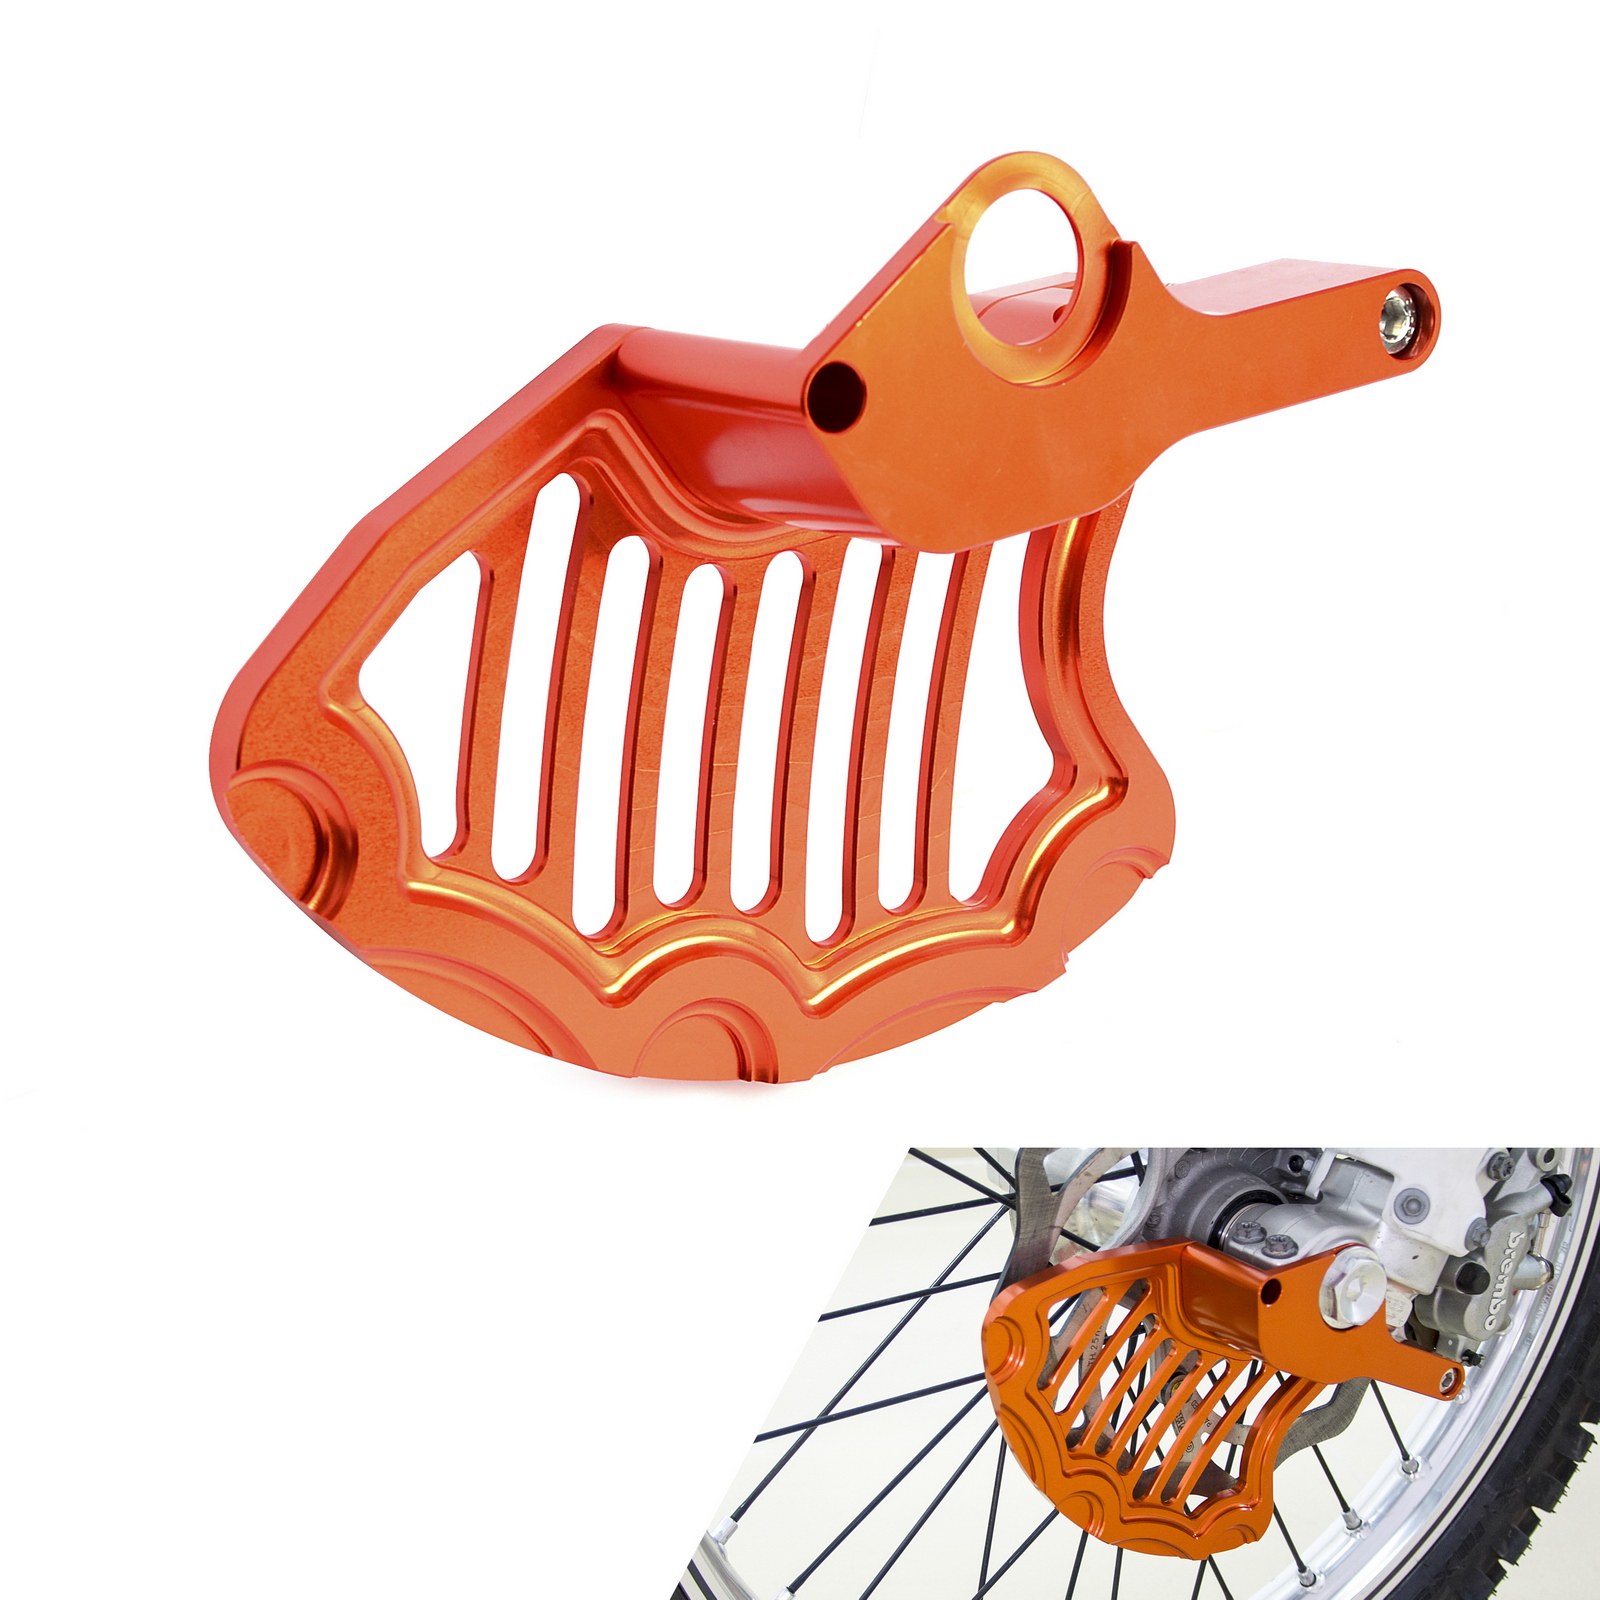 Motorcycle Front Brake Disc Rotor Guard For KTM 125 200 250 300 350 400 450 500 EXC EXCF SX XC XCF XCF XCW XCFW 2016 2017 2018 motorcycle front and rear brake pads for ktm xc exc 200 2004 2008 xc exc 250 400 450 2004 2007 sintered brake disc pad